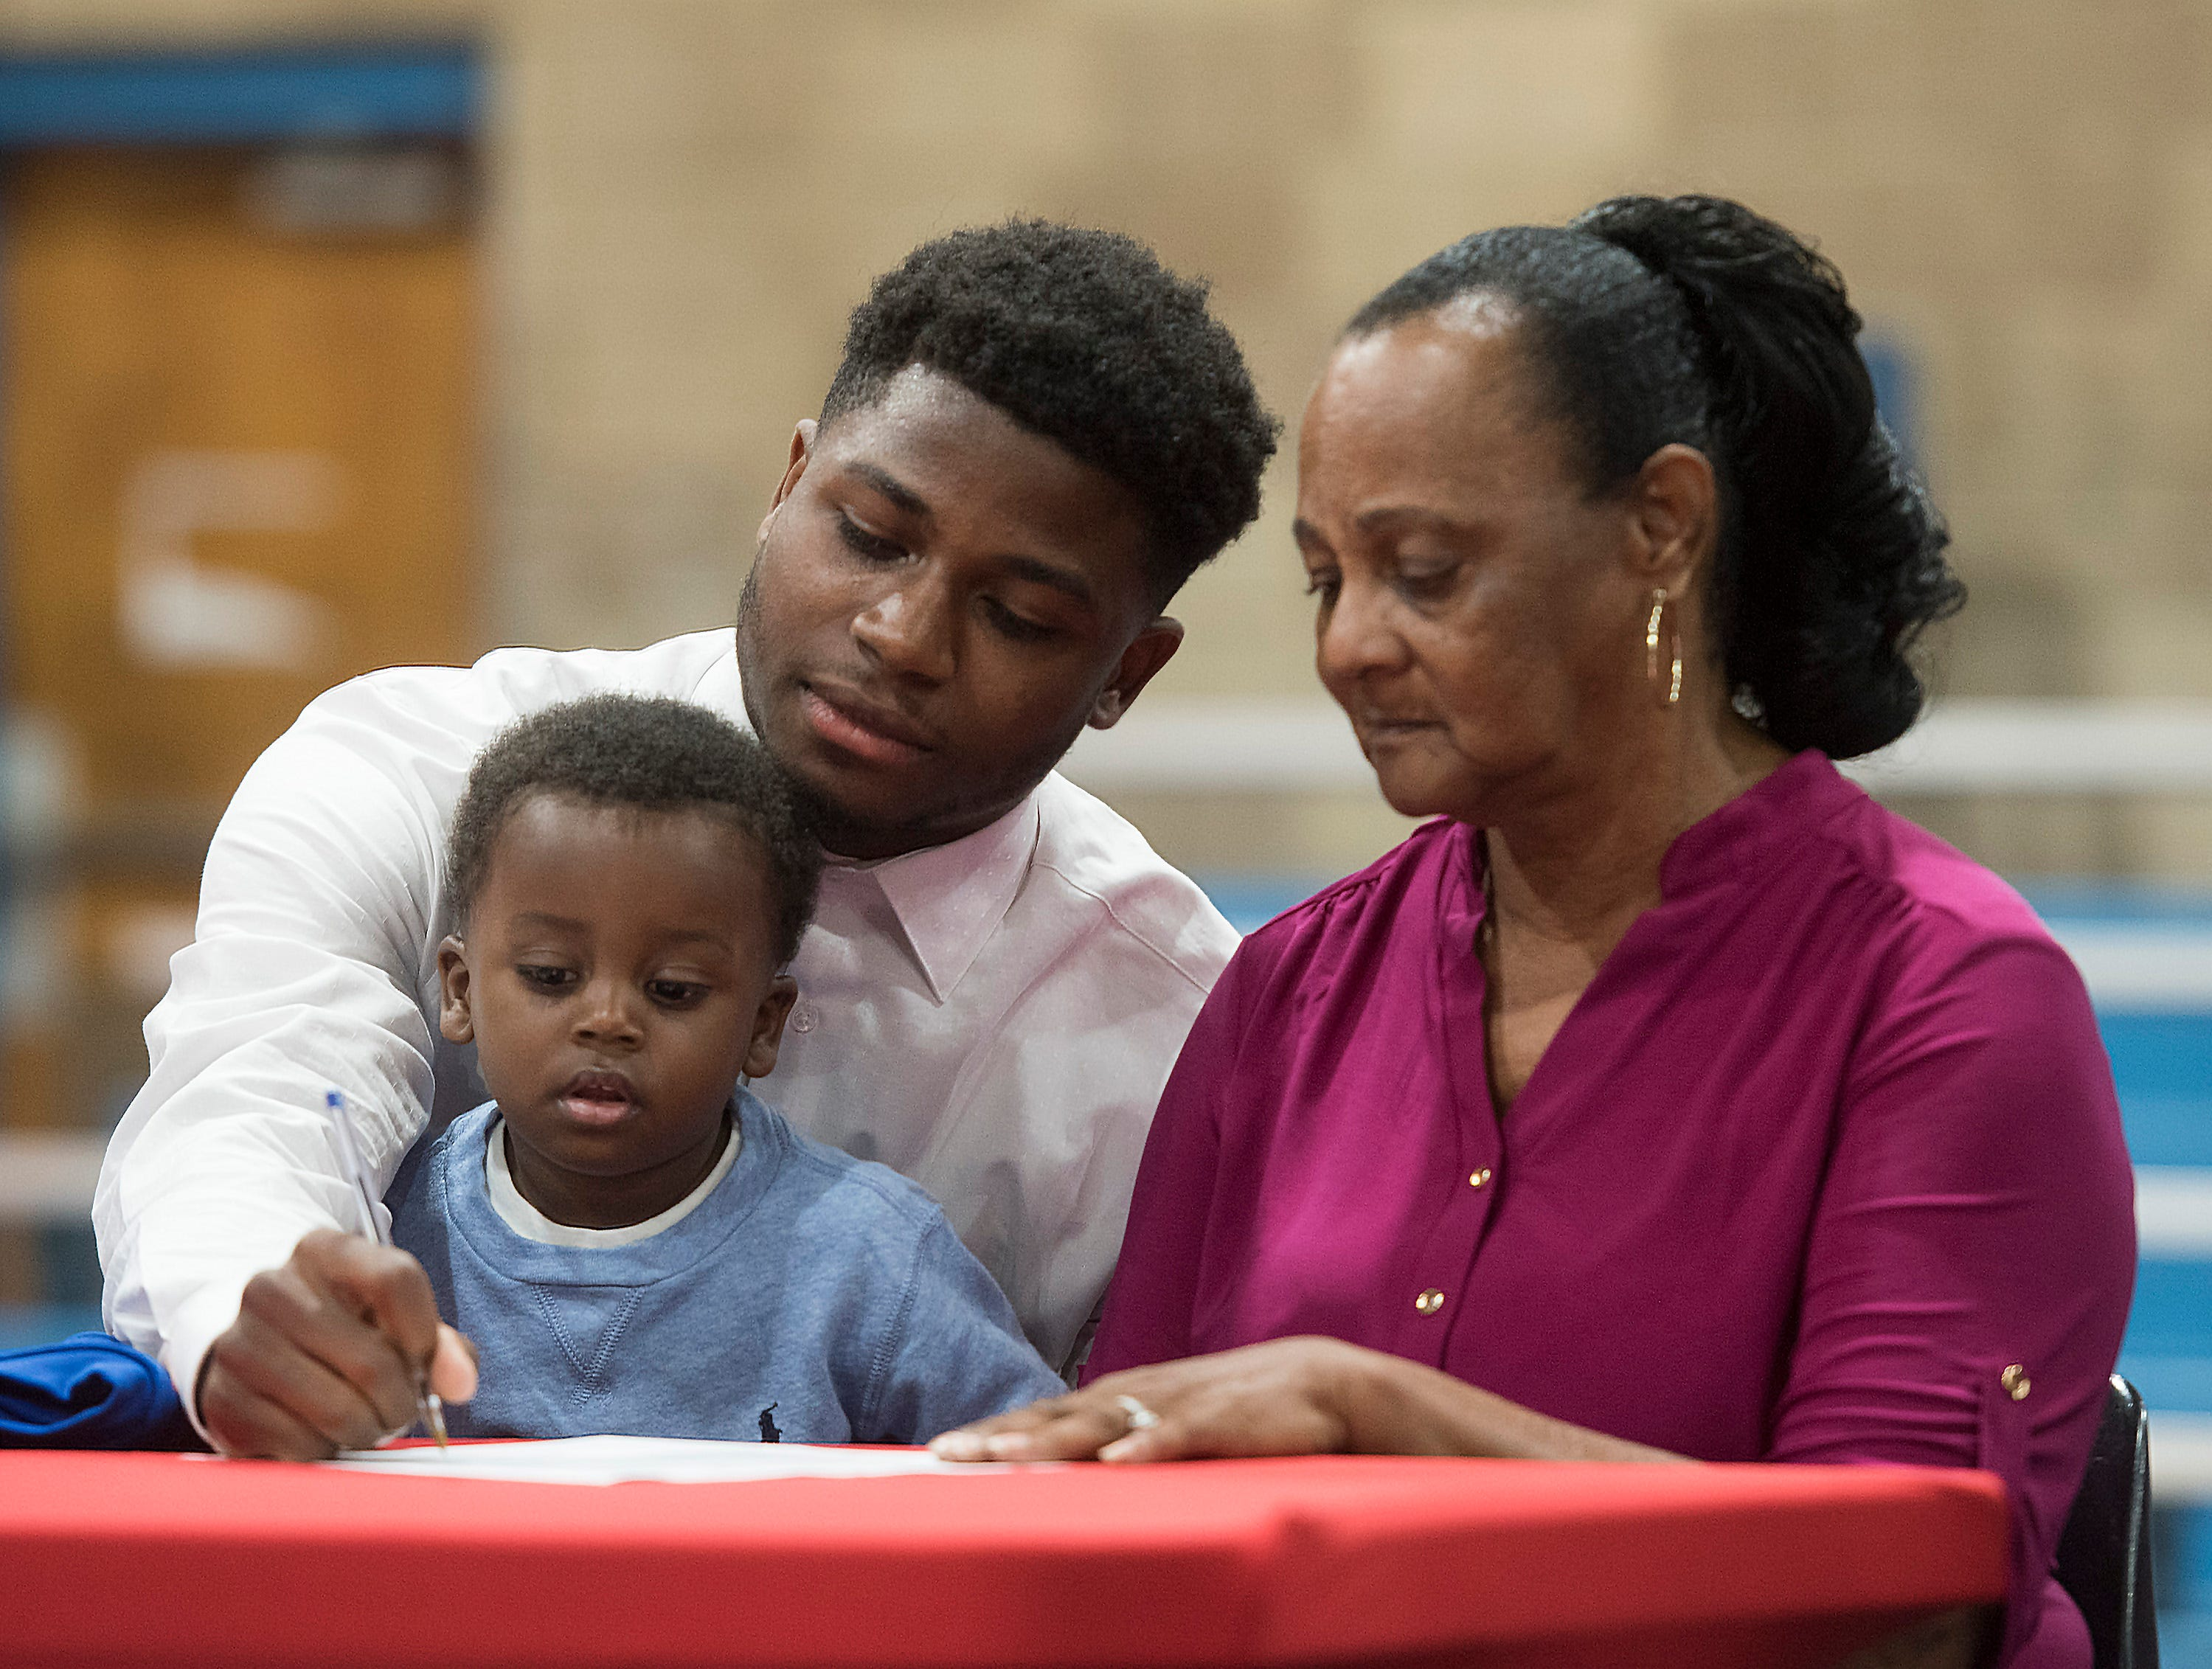 Pine Forest High School's Anwar Lewis commits to Hutchinson Community College in Kansas, on National Signing Day on Wednesday Feb.6, 2019, while his family looks on.